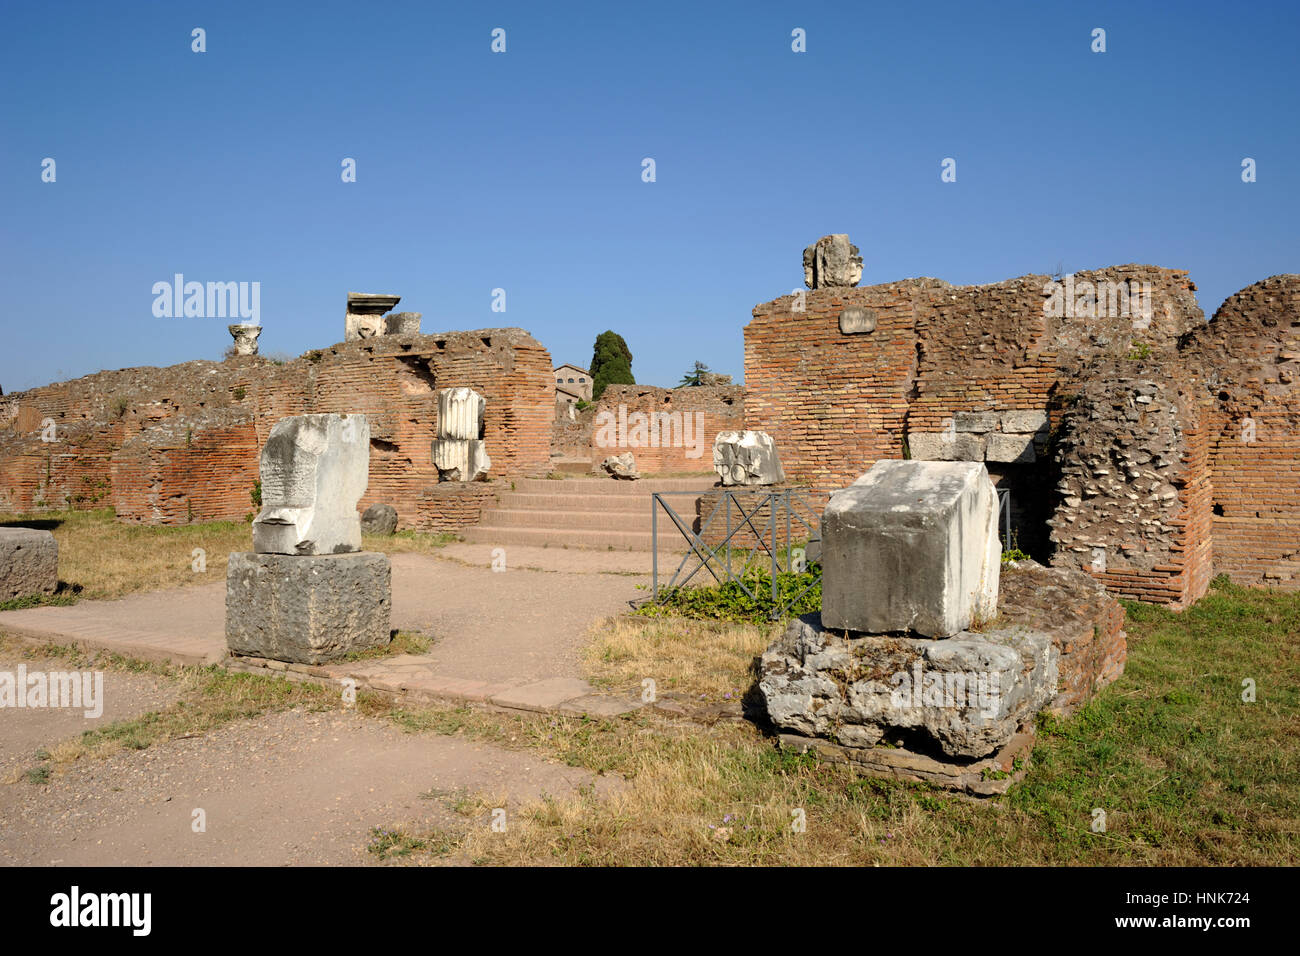 paphos latin dating site The fort was erected on the medieval ruins of a structure dating back to 1391,  paphos area, paphos town  latin america: 020 8758 4774.